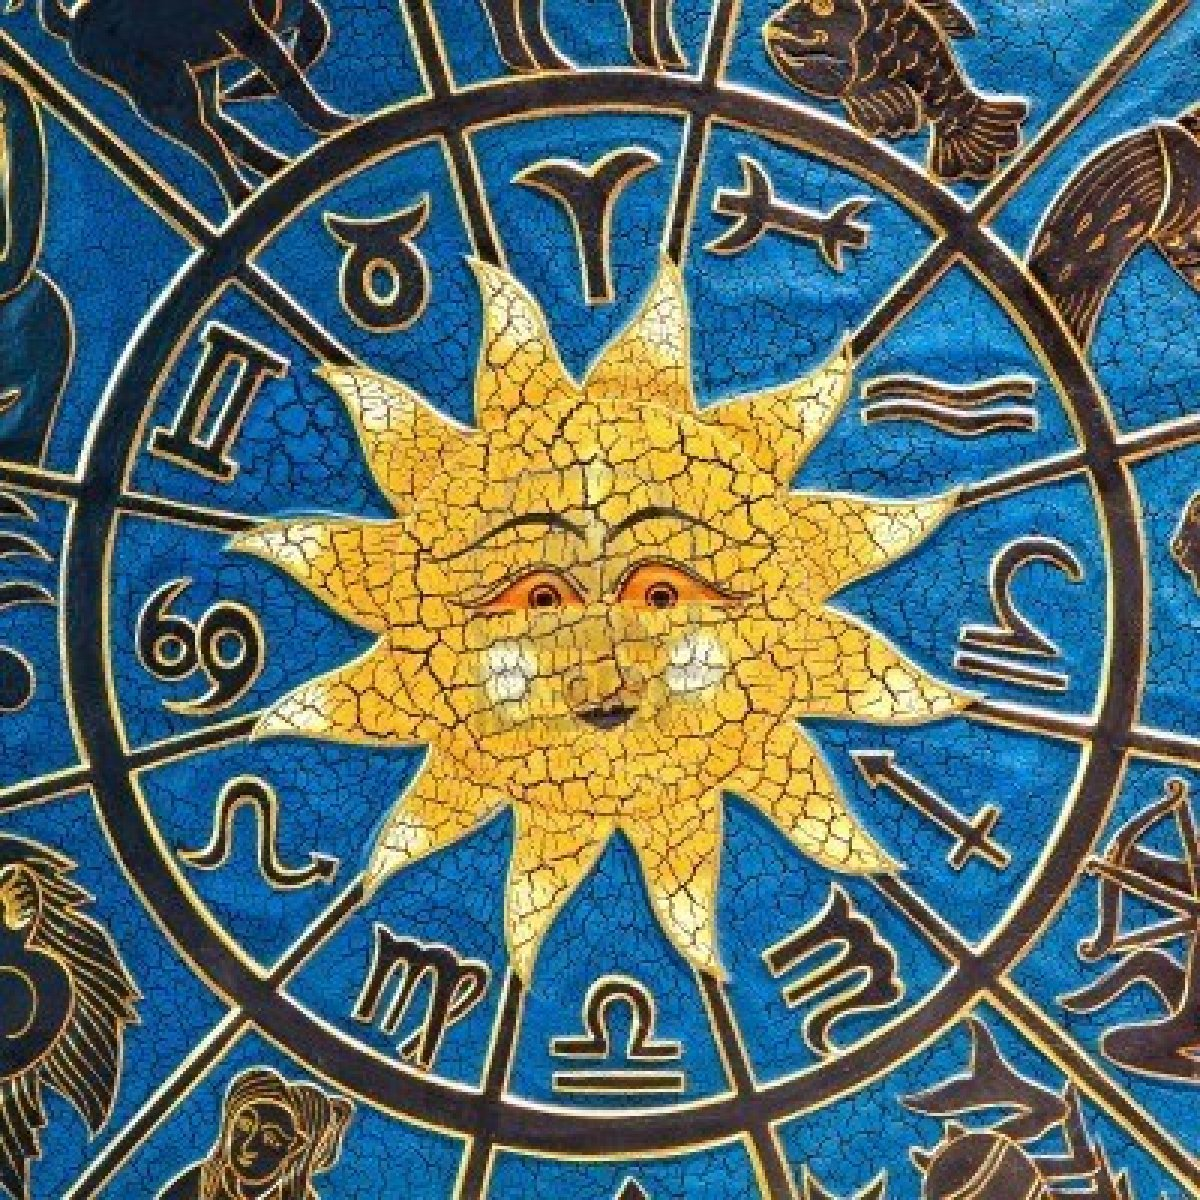 images/zodiac-signs-with-golden-sun.jpg